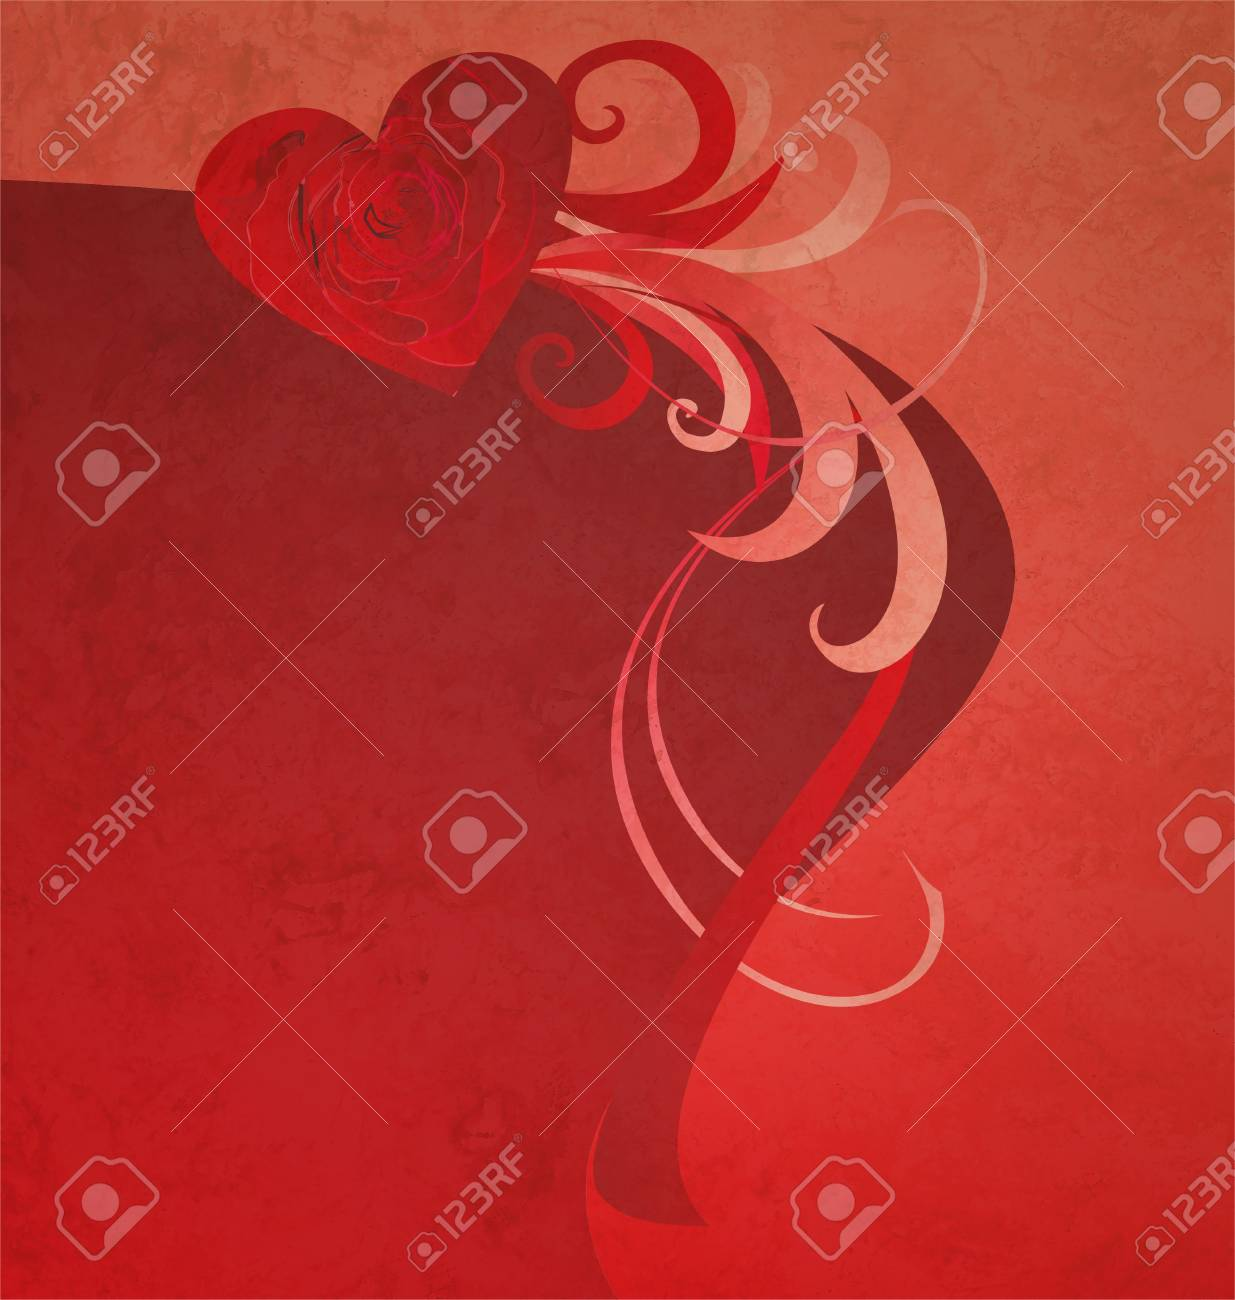 red heart with red rose grunge abstract background for love and wedding neeeds Stock Photo - 14820853